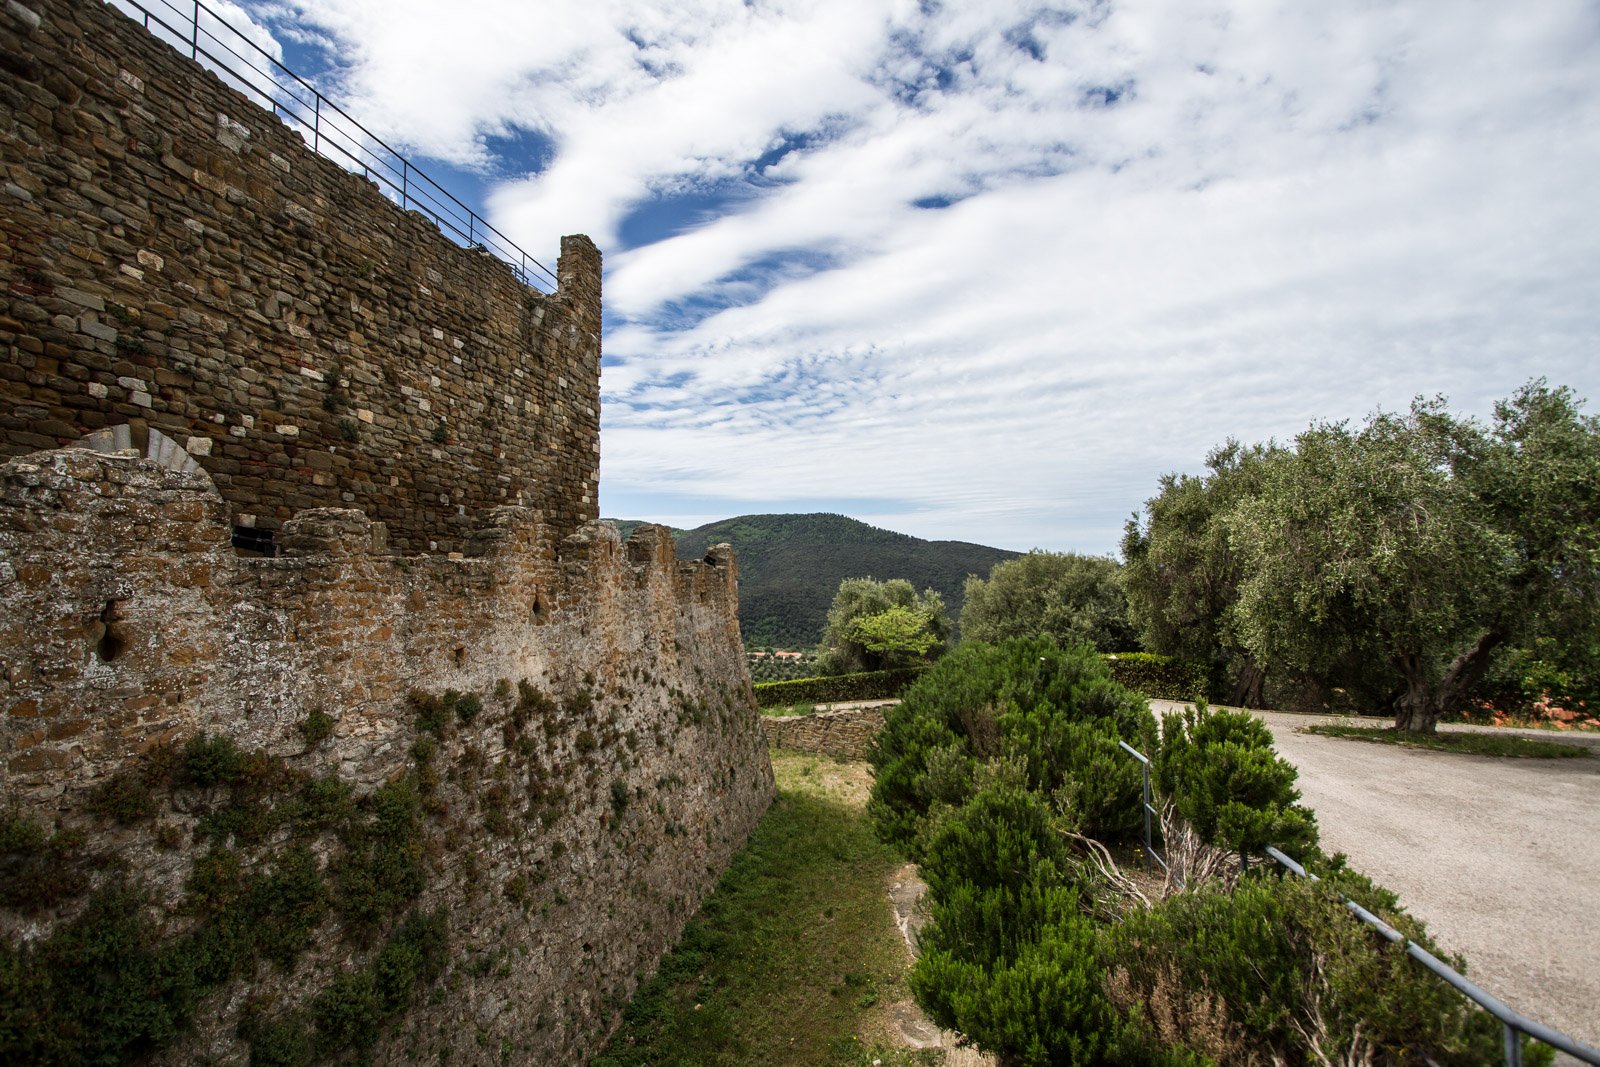 The castle is surrounded by fortifications.